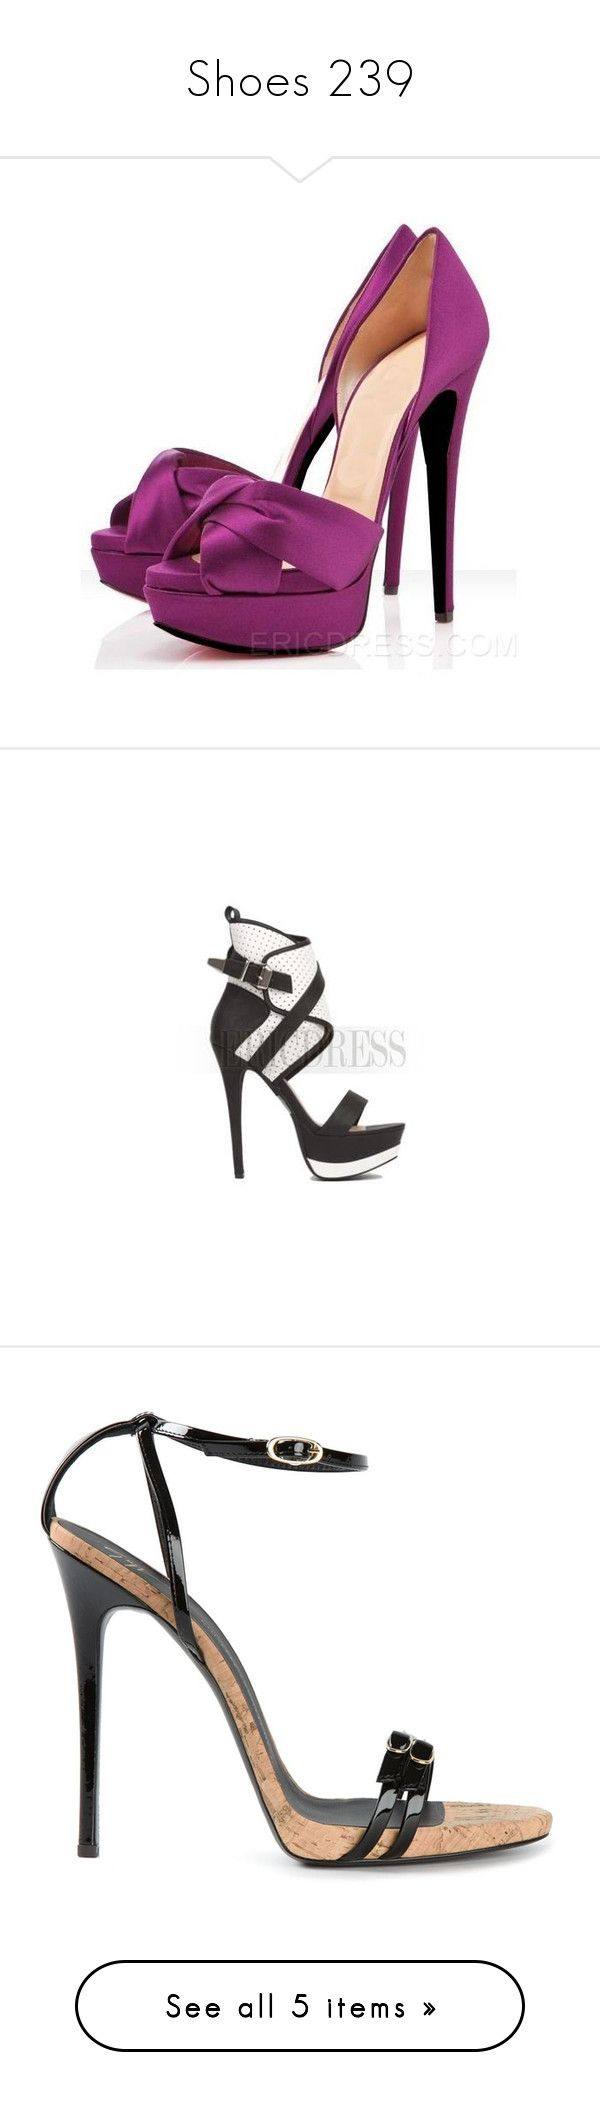 """""""Shoes 239"""" by singlemom ❤ liked on Polyvore featuring shoes, sandals, saltos, peep toe shoes, peep toe stilettos, peep toe sandals, stilettos shoes, stiletto sandals, high heel stilettos and platform stiletto shoes"""